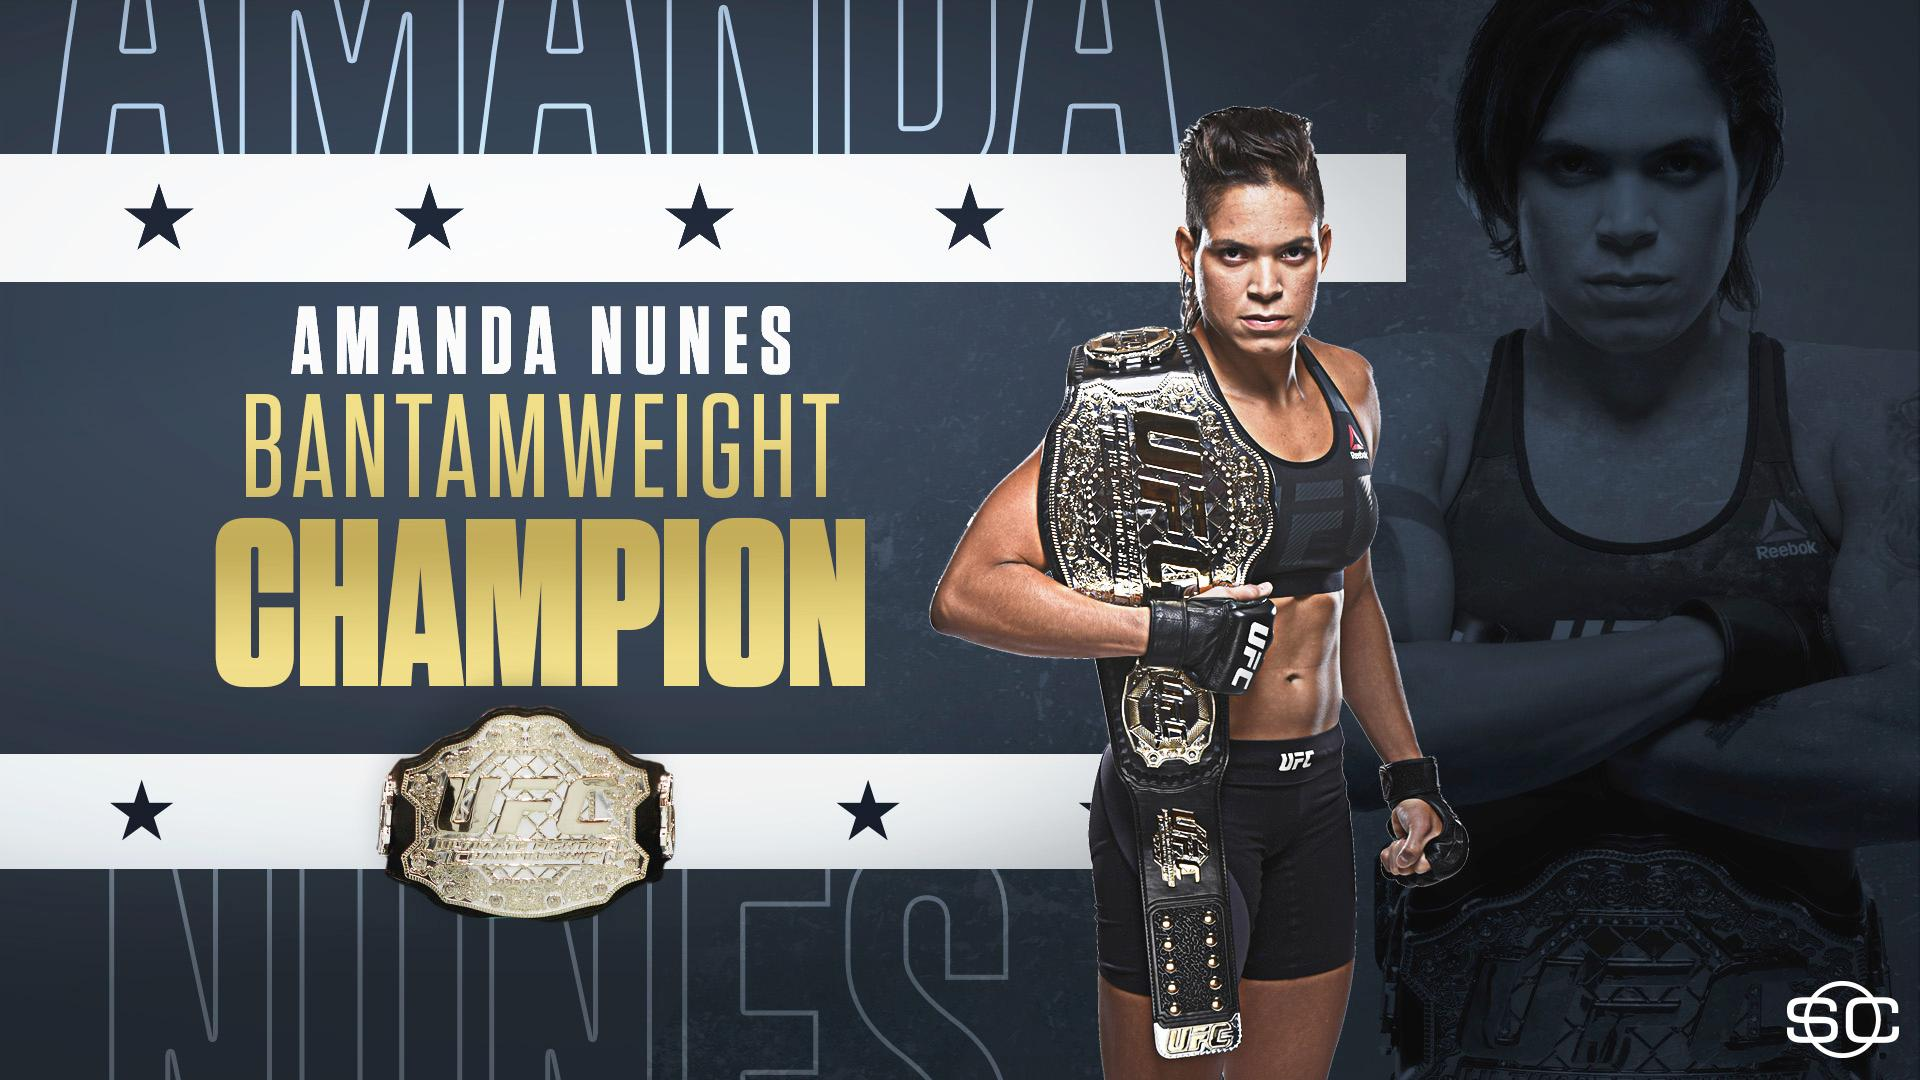 AND STILL!  Amanda Nunes retains her bantamweight title, defeating Valentina Shevchenko by split decision. https://t.co/l3dEQgXAlL